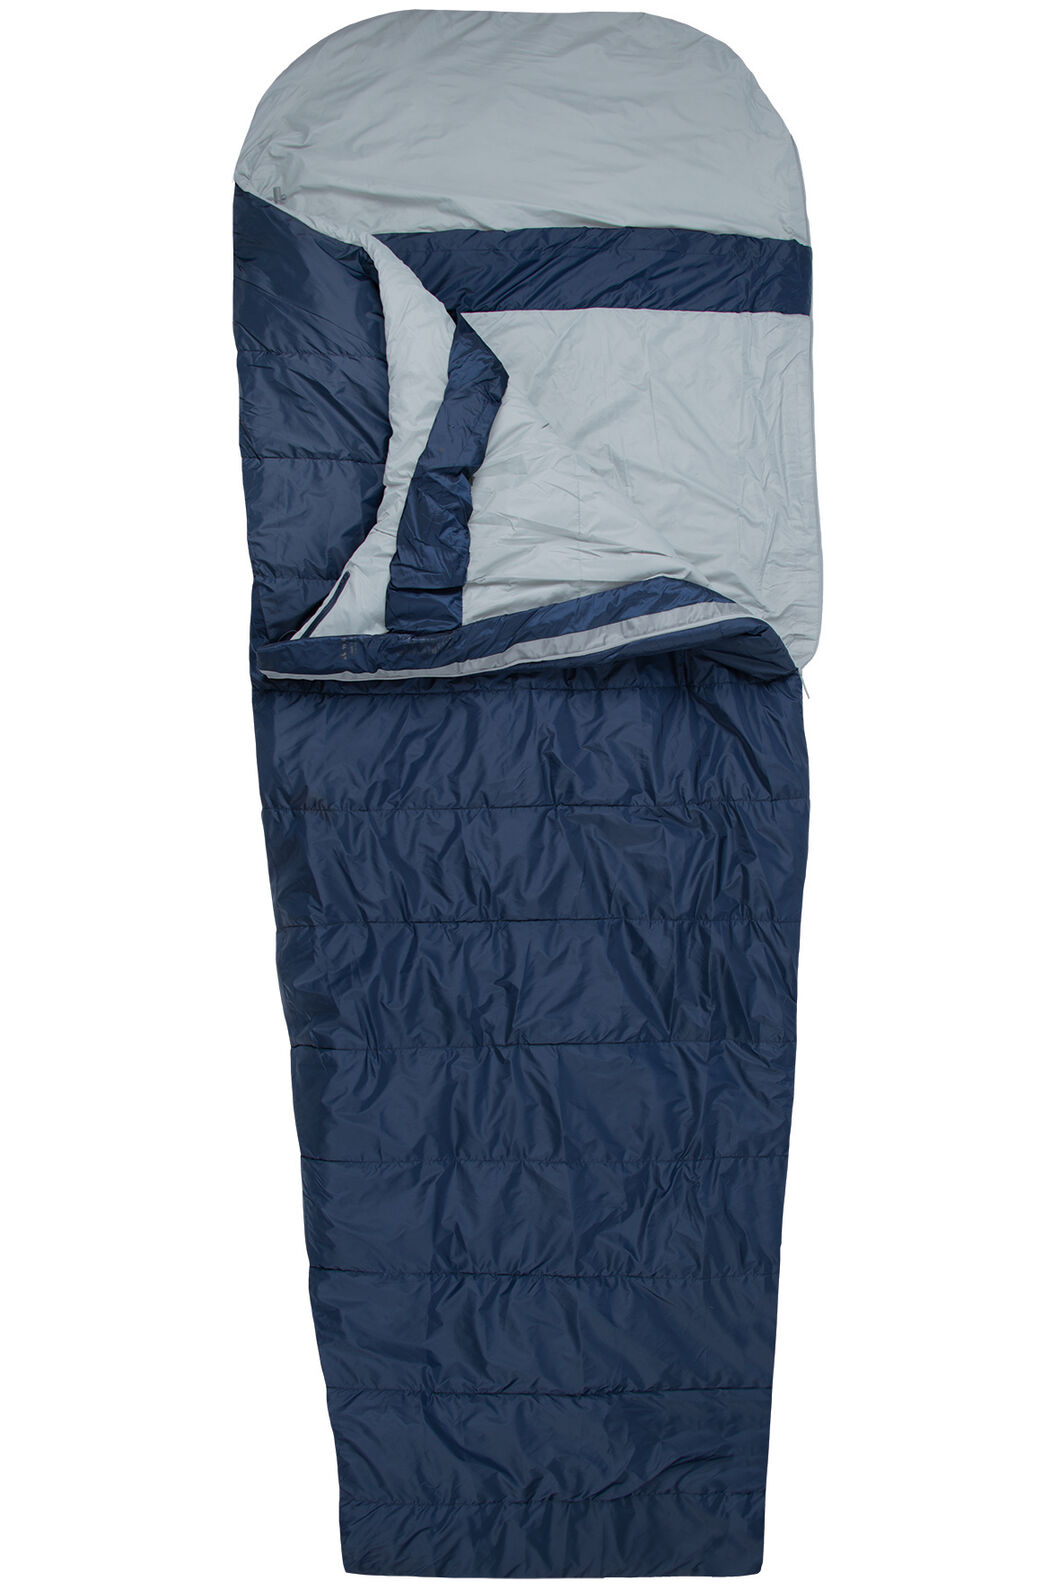 Roam Synthetic 150 Sleeping Bag - Standard, Black Iris, hi-res